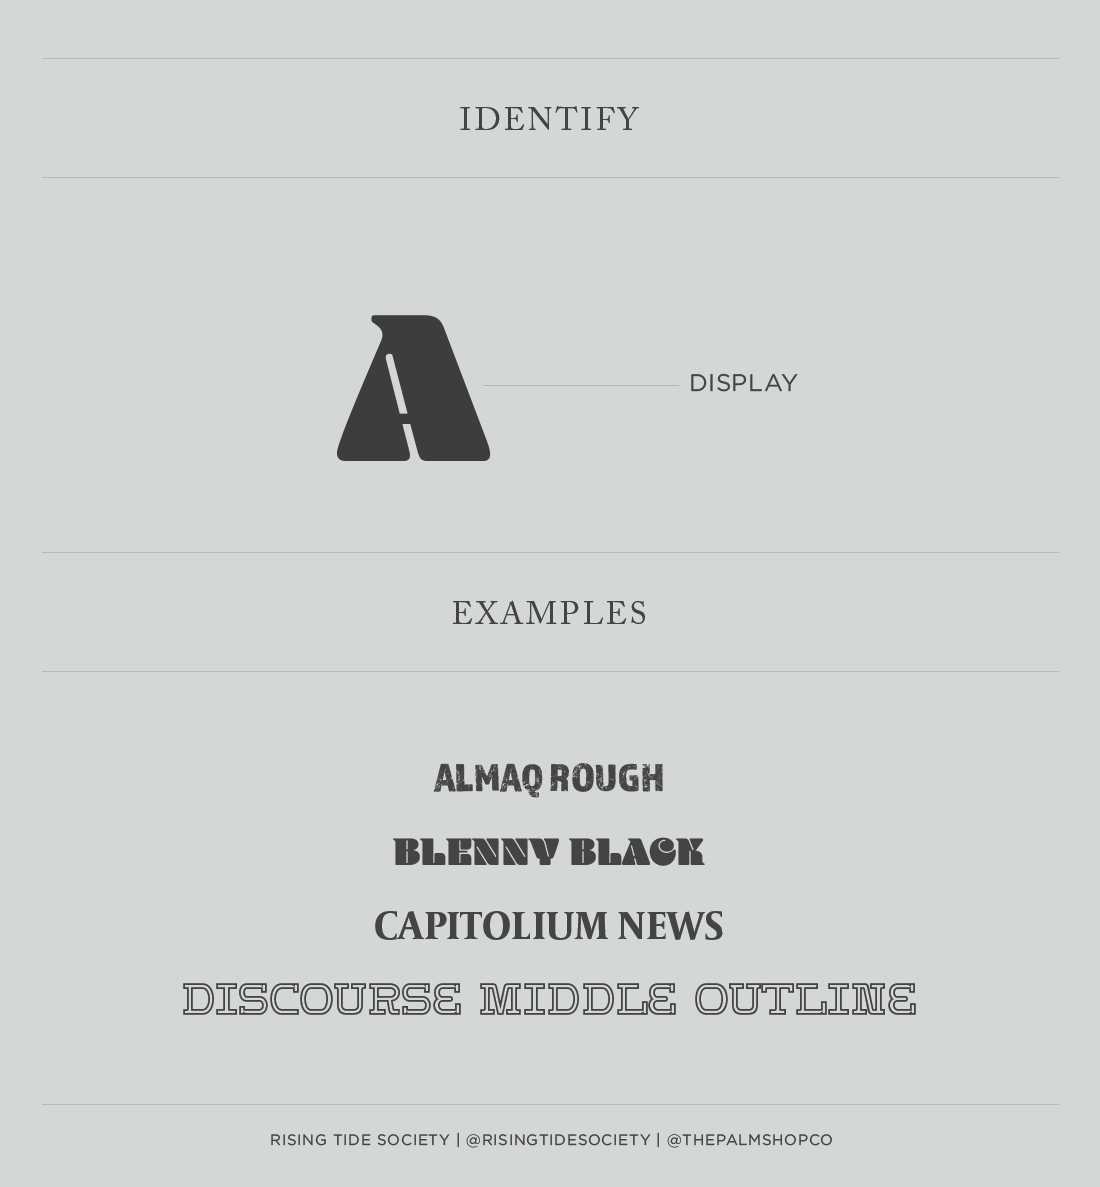 Display font guide by the Rising Tide Society